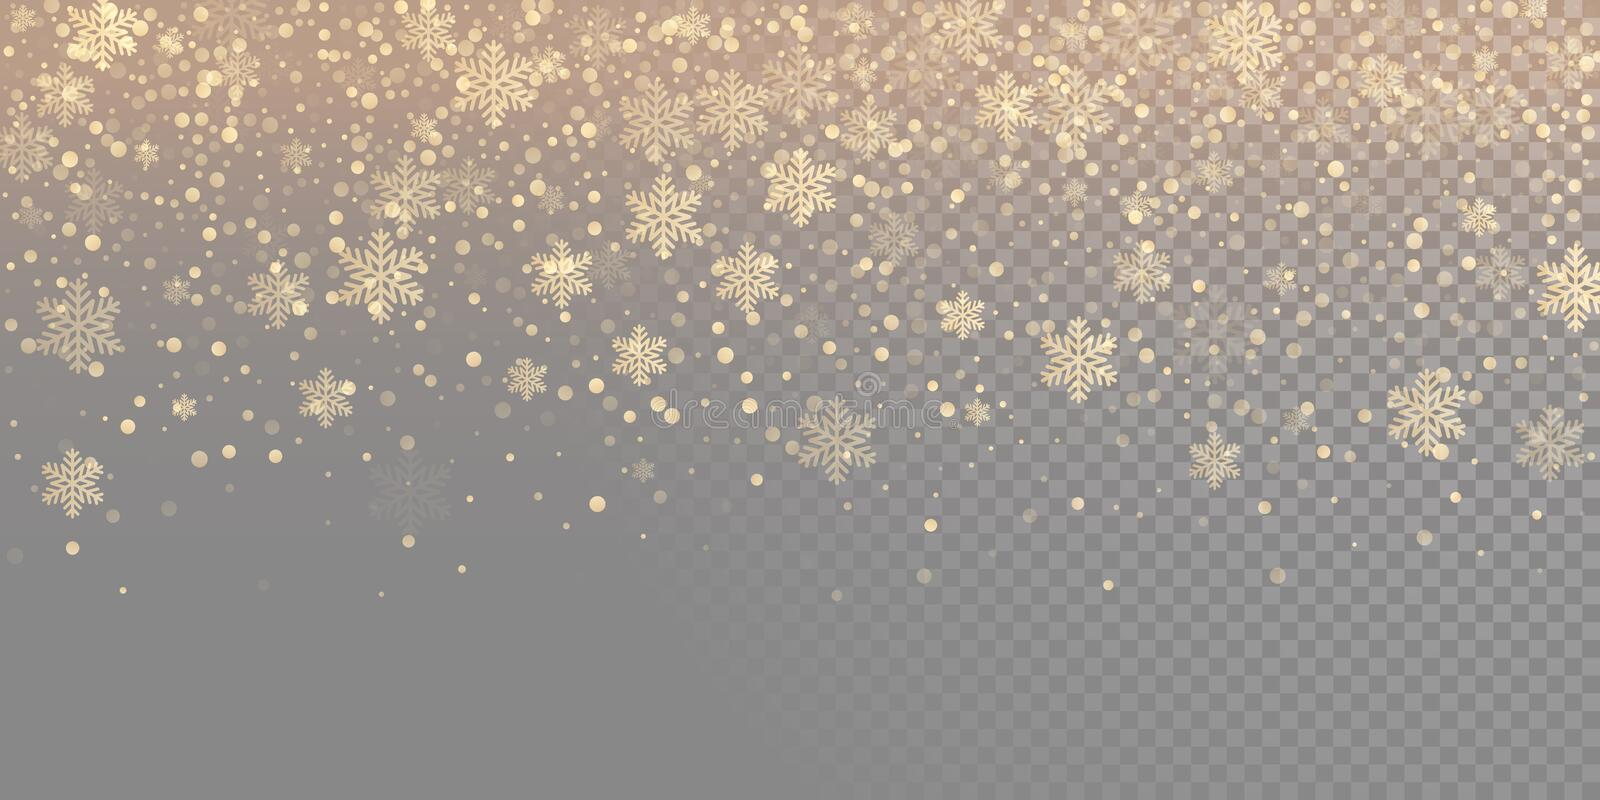 Falling snow flake golden pattern background. Gold snowfall overlay texture isolated on transparent white background. Winter Xmas. Snowflake elementsfor royalty free illustration